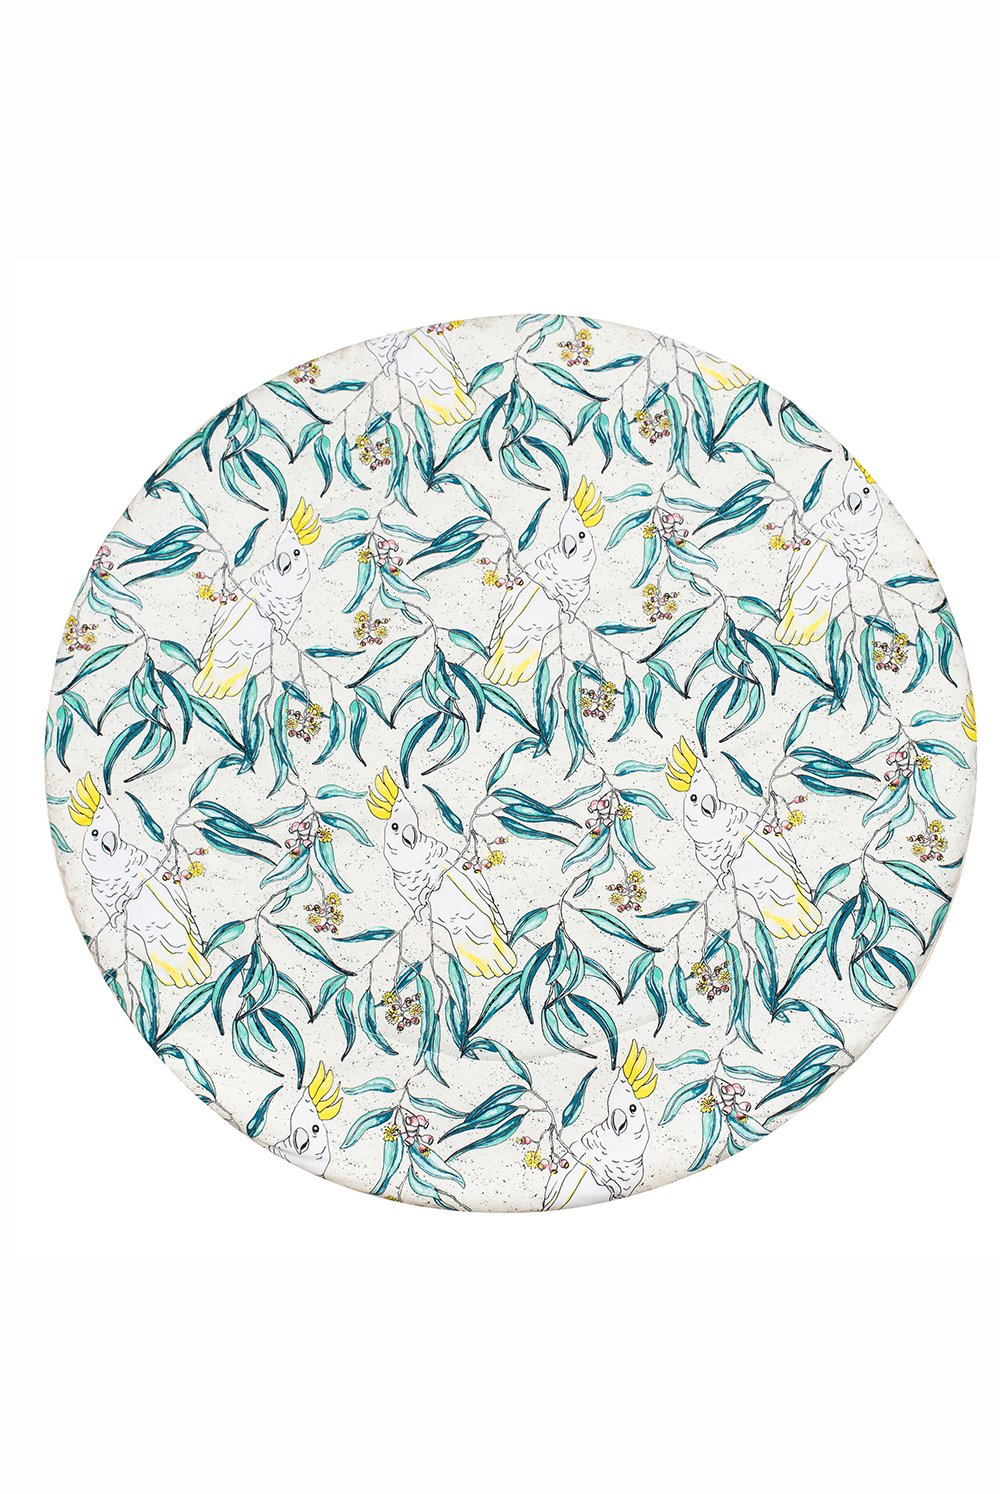 Cockatoo Play Mat